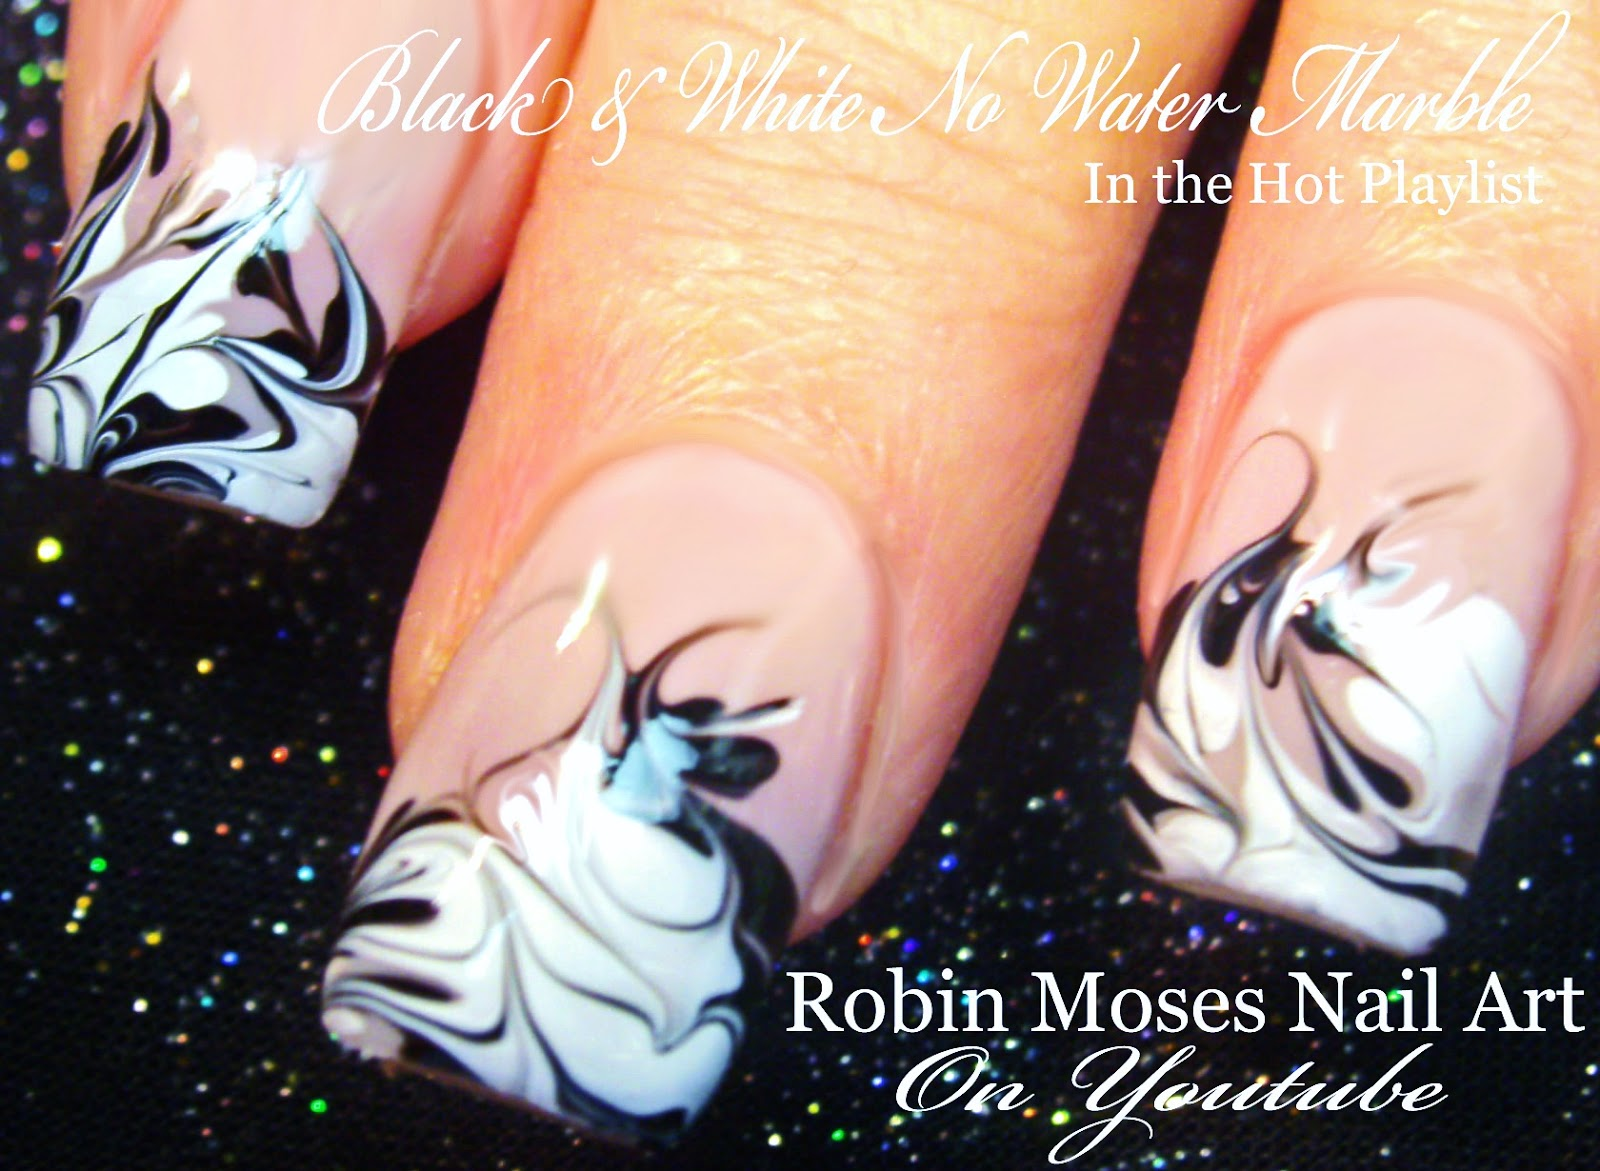 Black And White No Water Marble